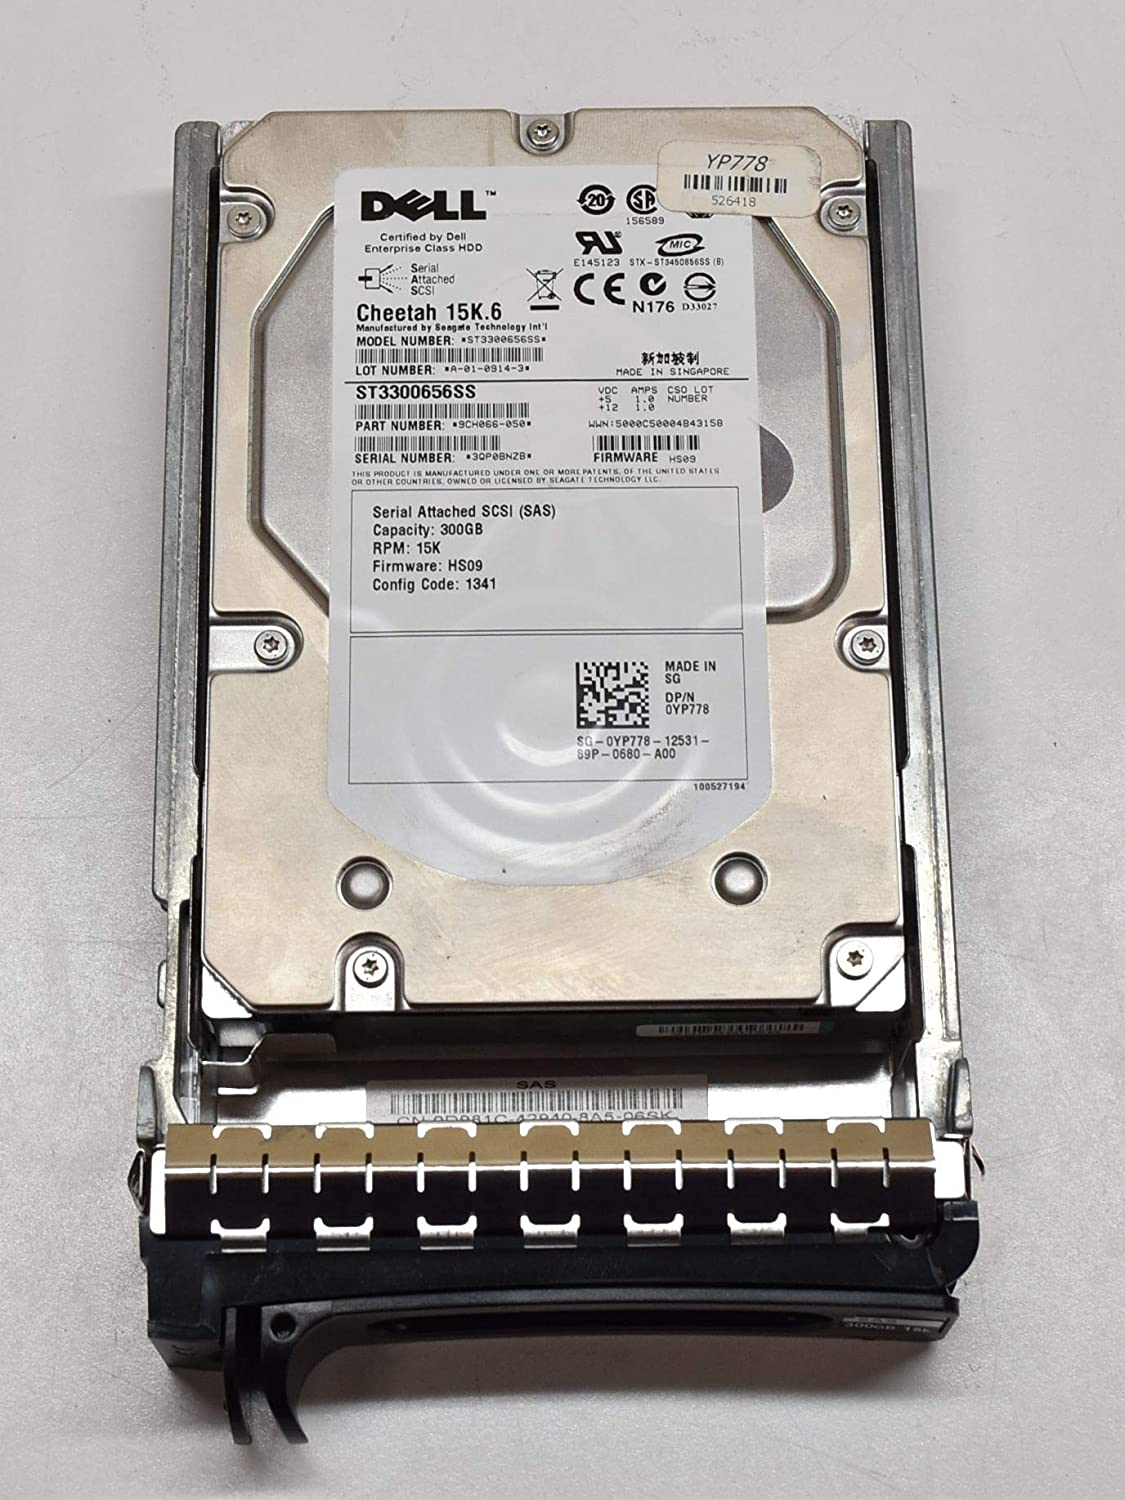 "YP778 - DELL ENTERPRISE CLASS 300GB 15K SAS 3.5"" 3Gbps 16MB CACHE HARD DRIVE W/TRAY F9541 COMPATIBLE WITH PowerEdge R900 R905 1900 1950 2900 2950 2970 MD1000 MD3000 MD3000i"